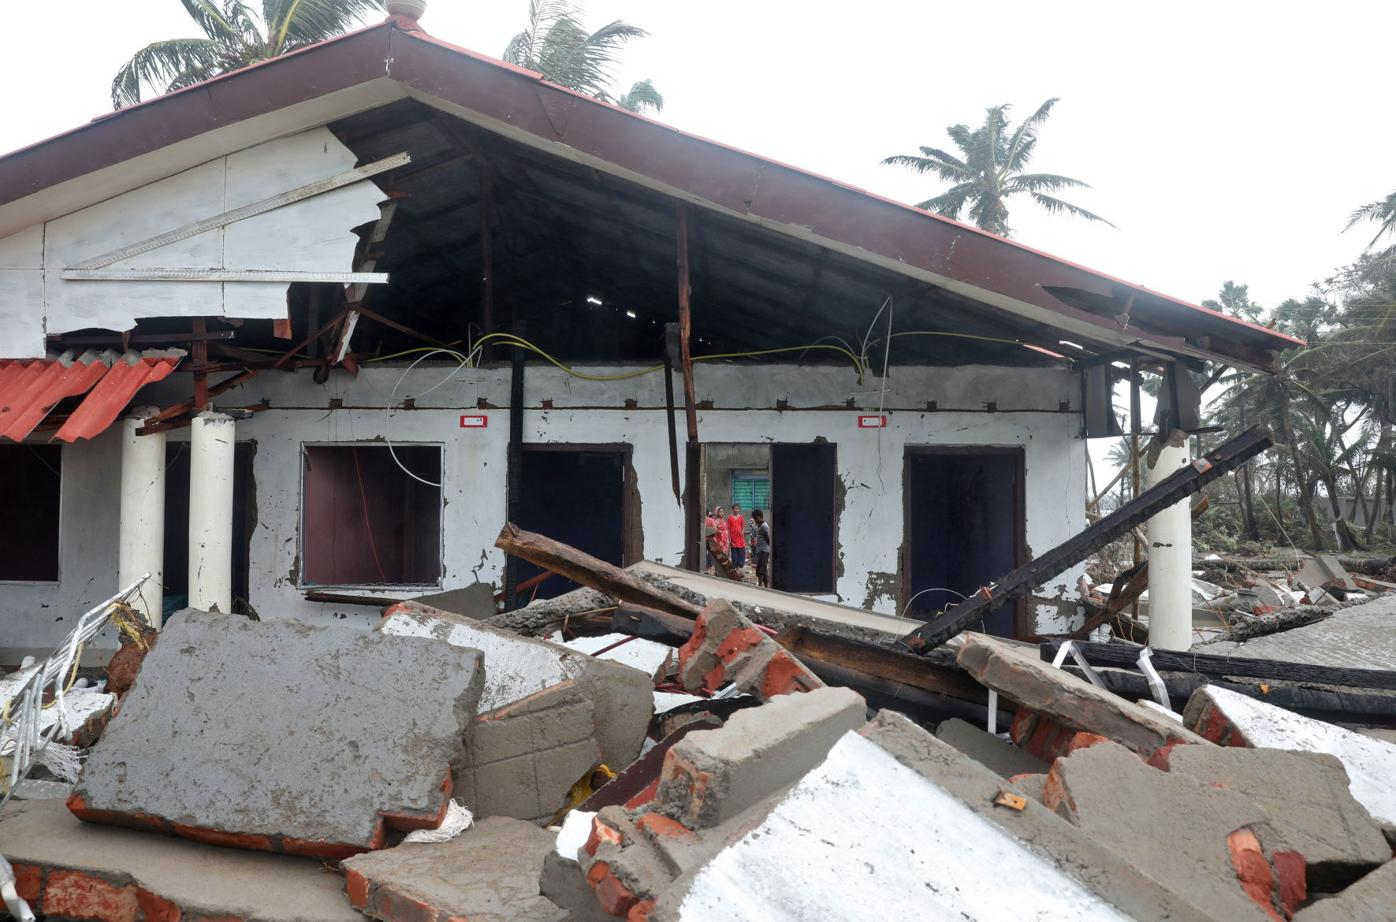 People stand near a damaged tourist lodge on a beach front following Cyclone Yaas in Shankarpur